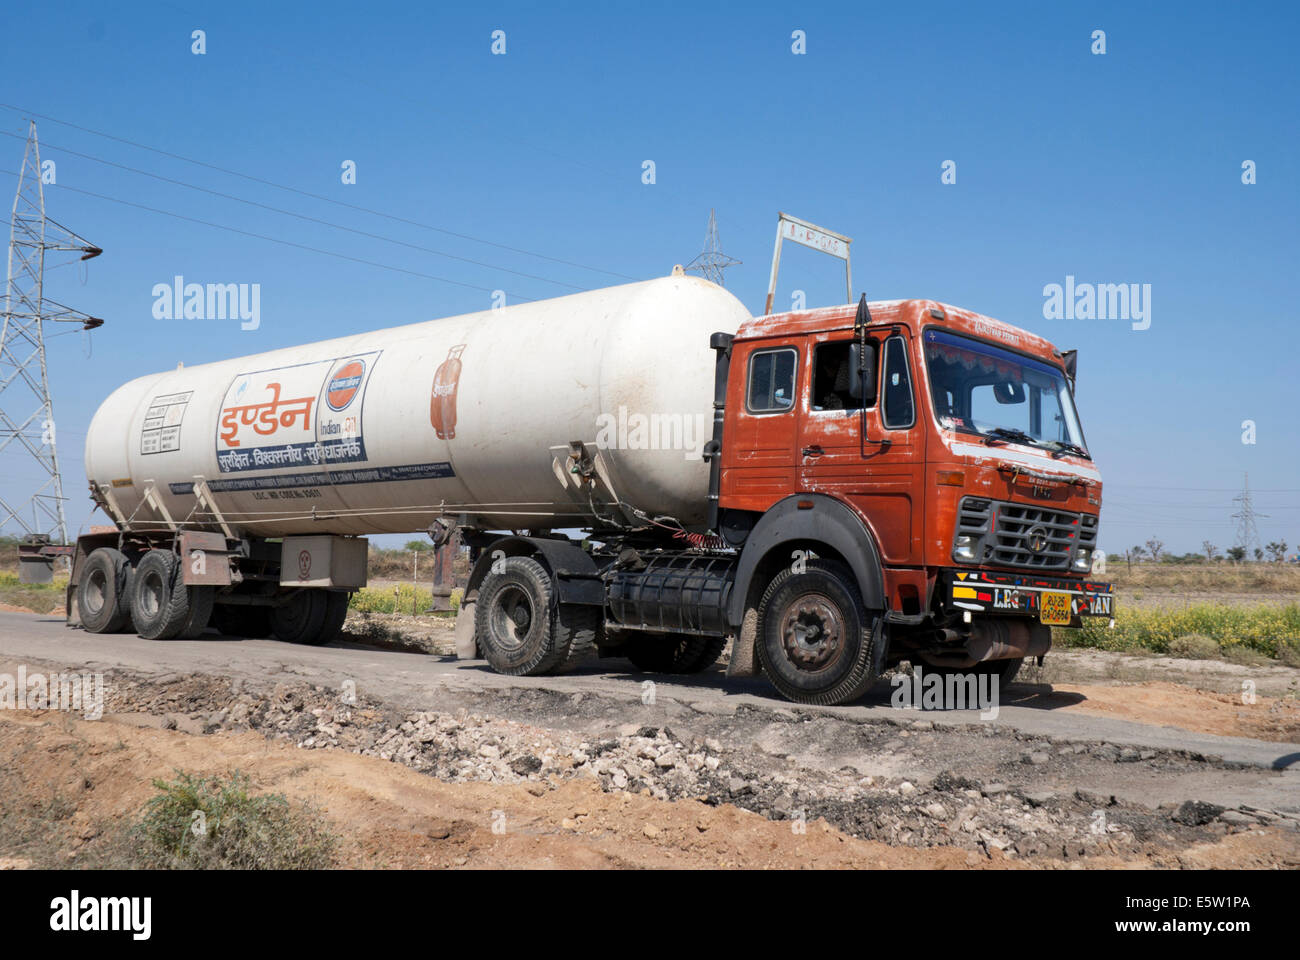 Liquid Propane Gas tanker truck, owned by Indian Oil, on the